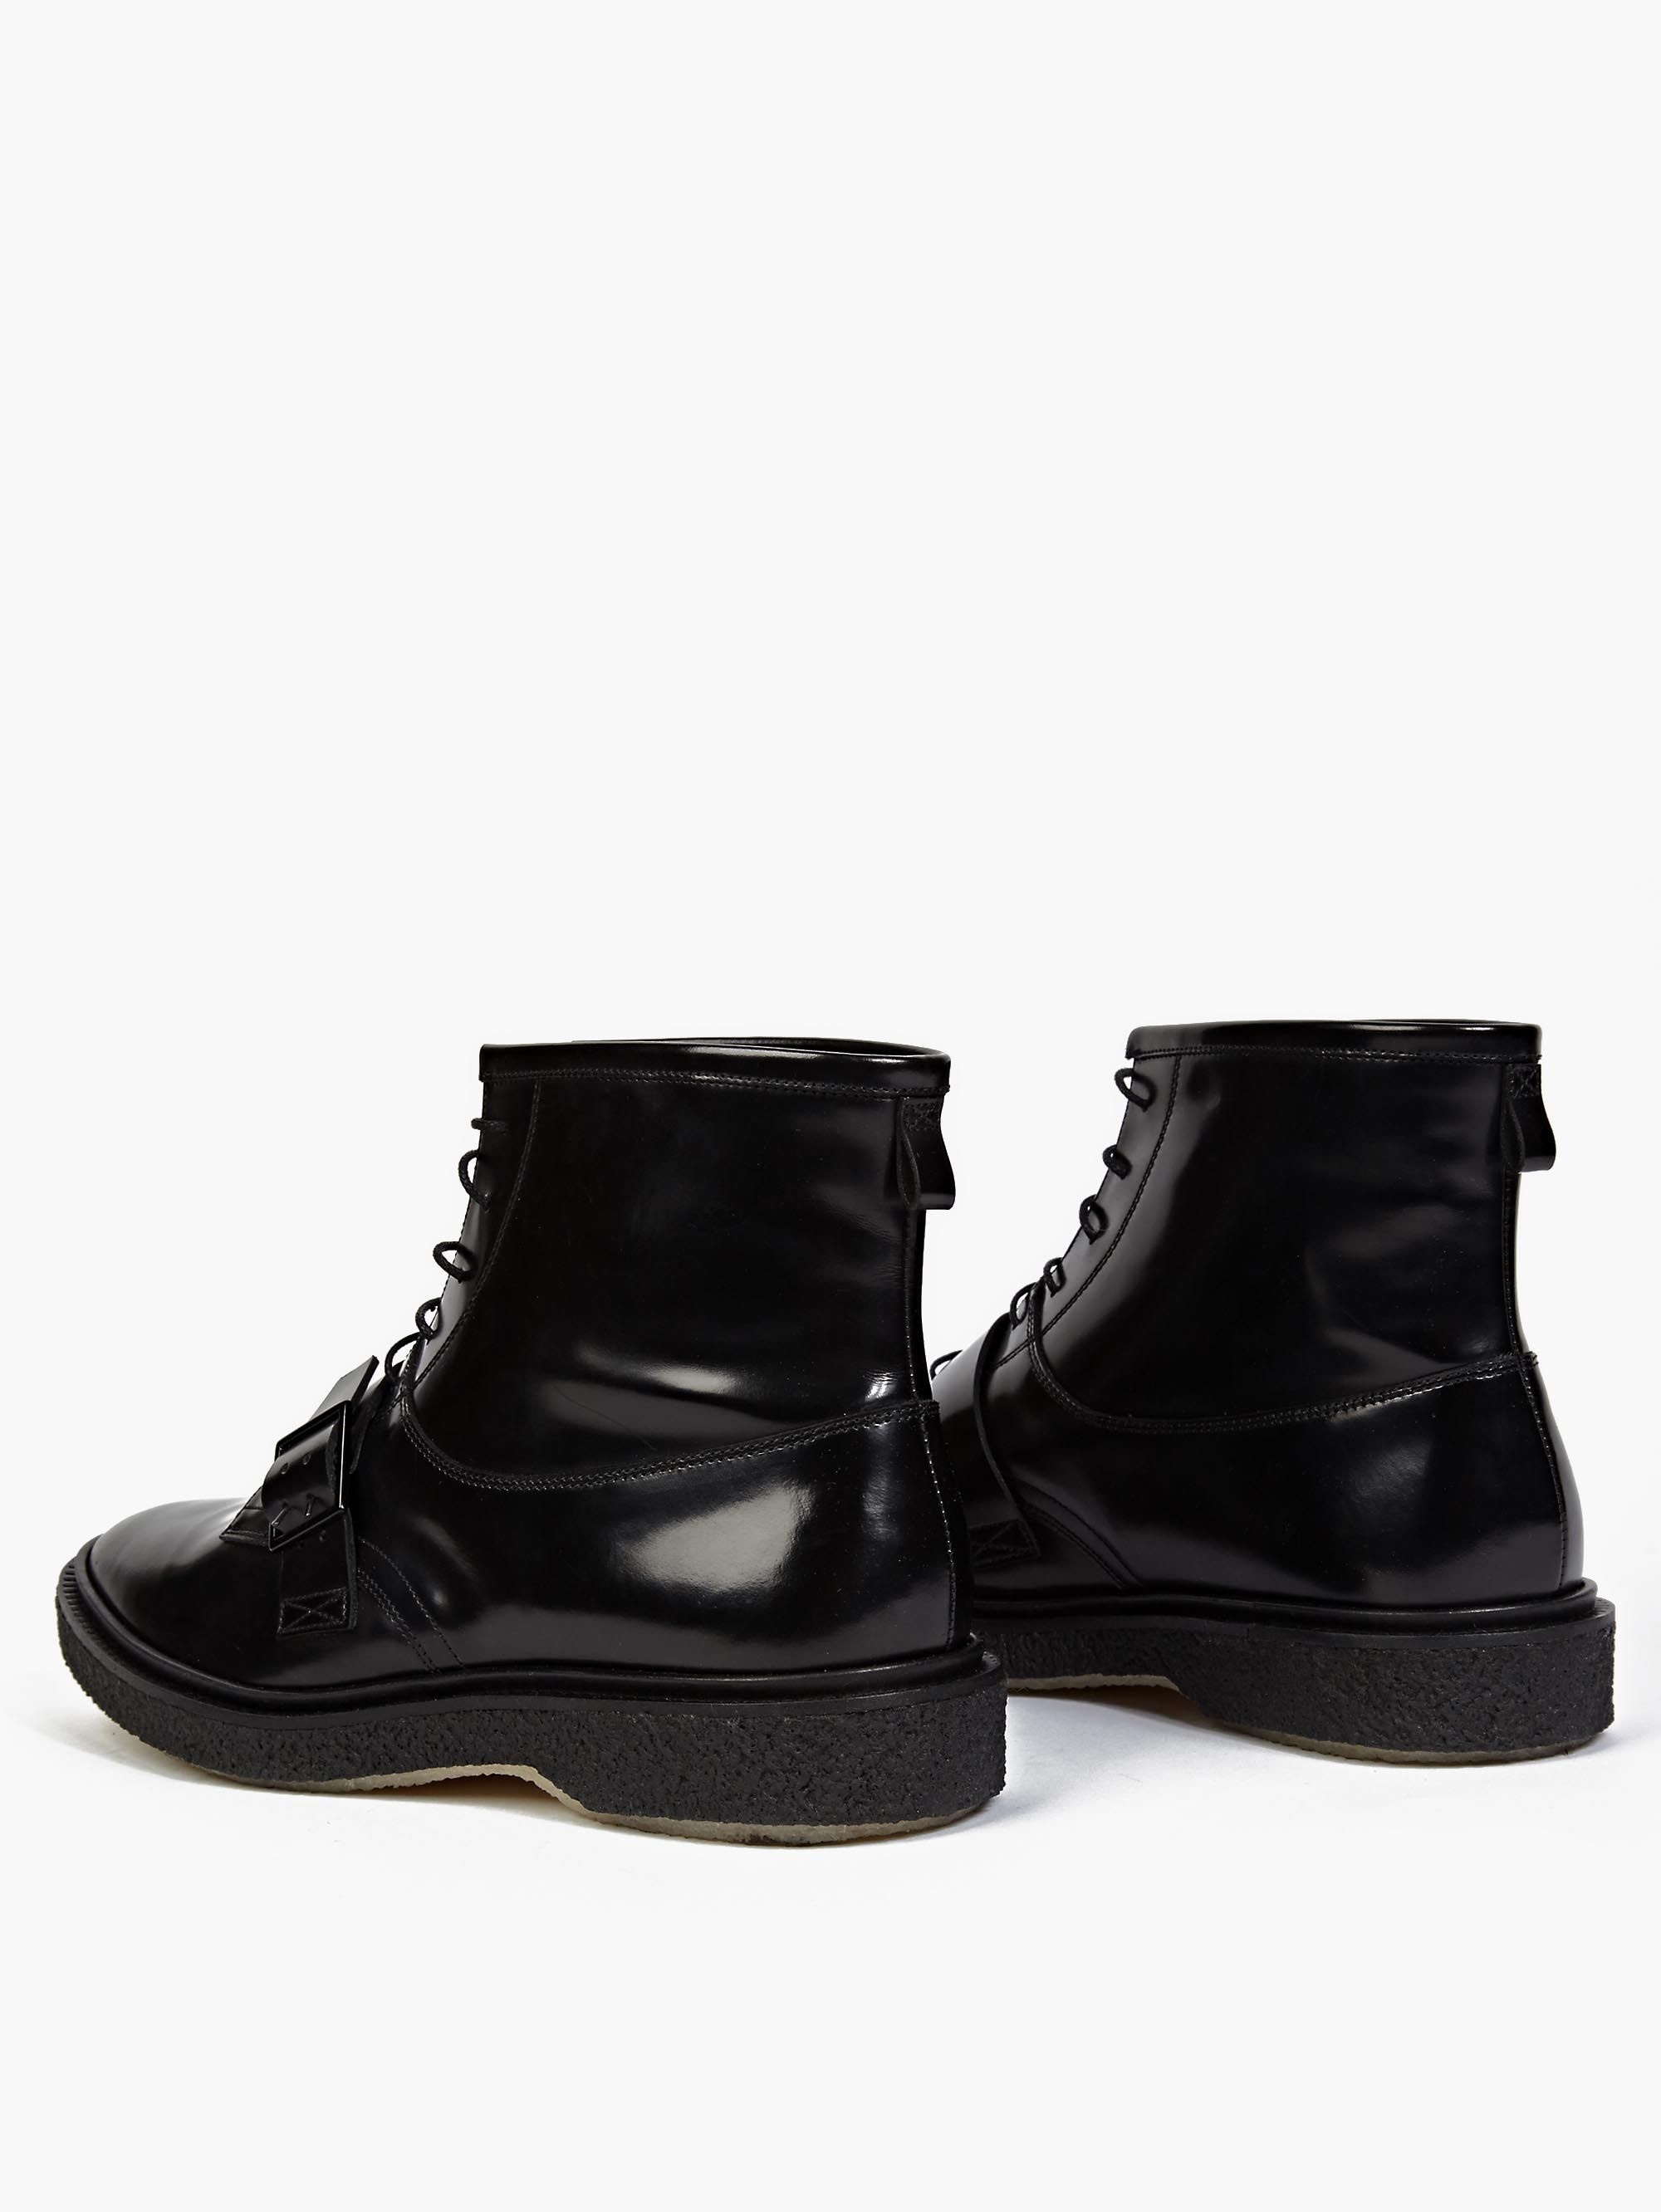 adieu black leather type 46 detail boots in black